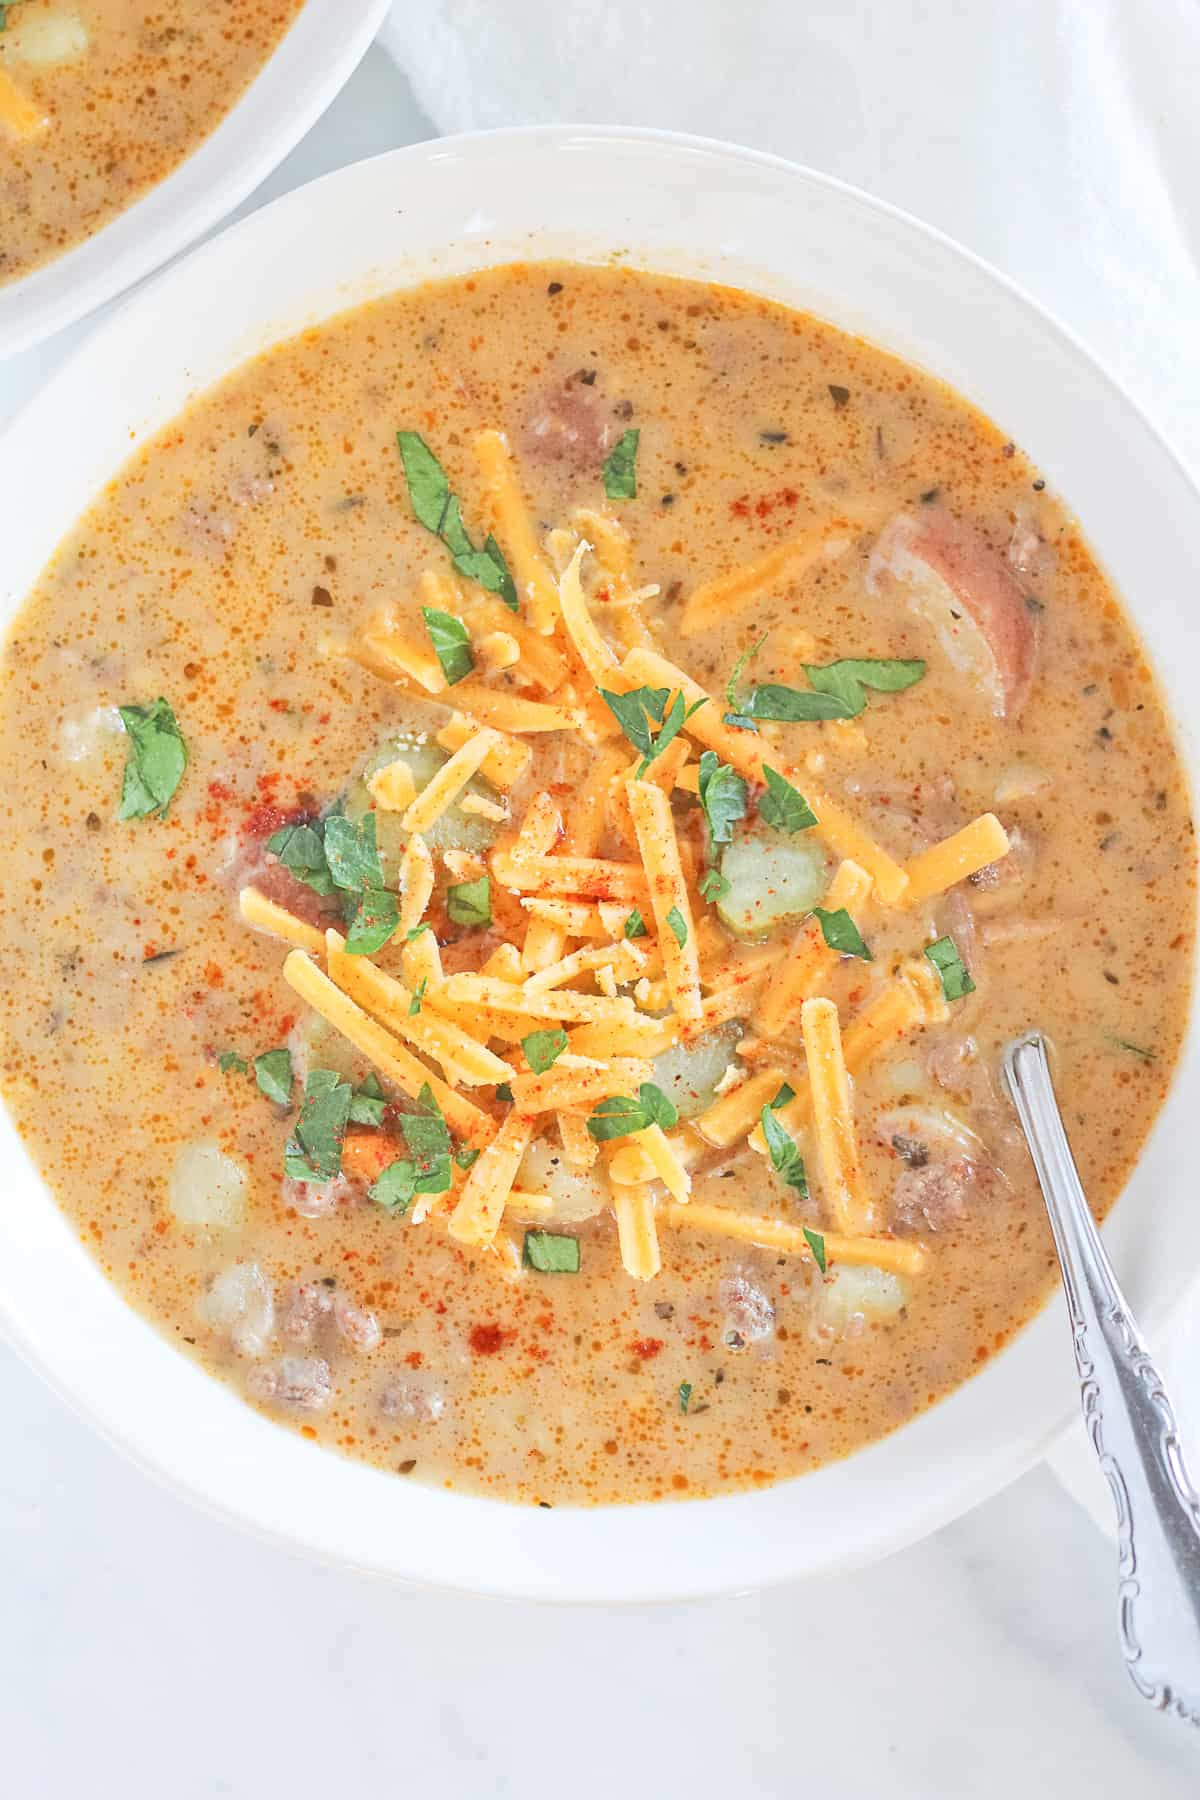 Large bowl of cheeseburger soup topped with cheddar, parsley and dill pickles.